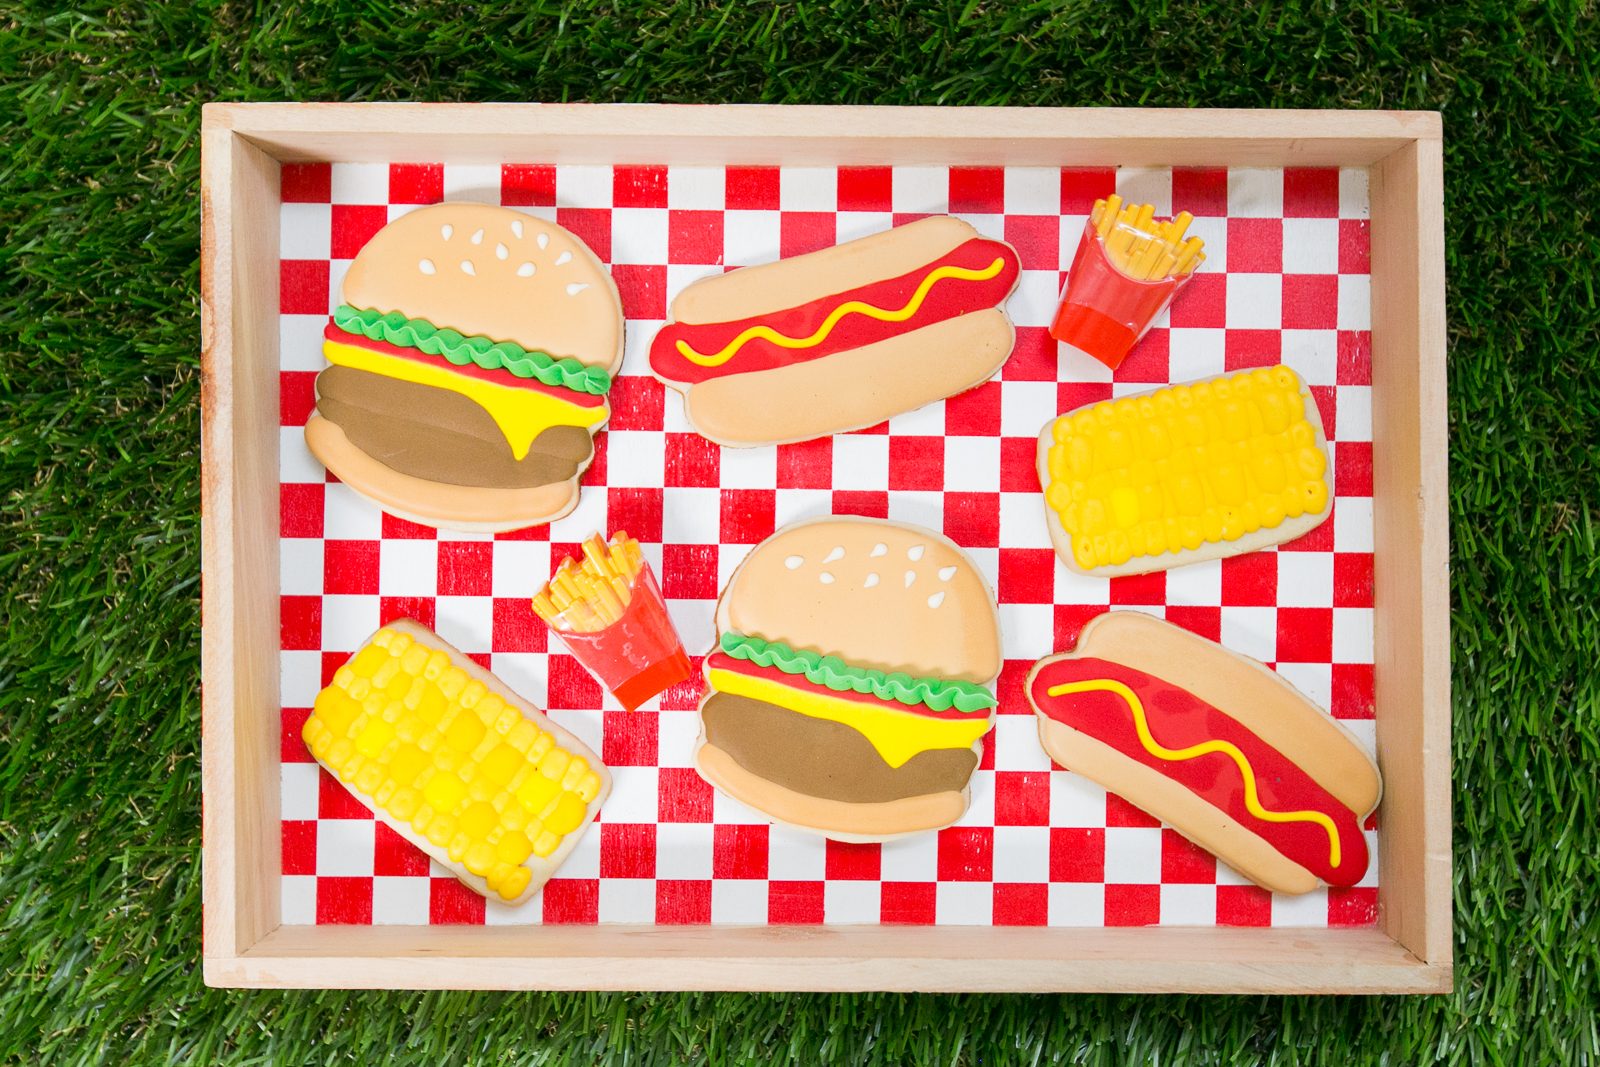 Hotdog and Hamburger Shaped Sugar Cookies